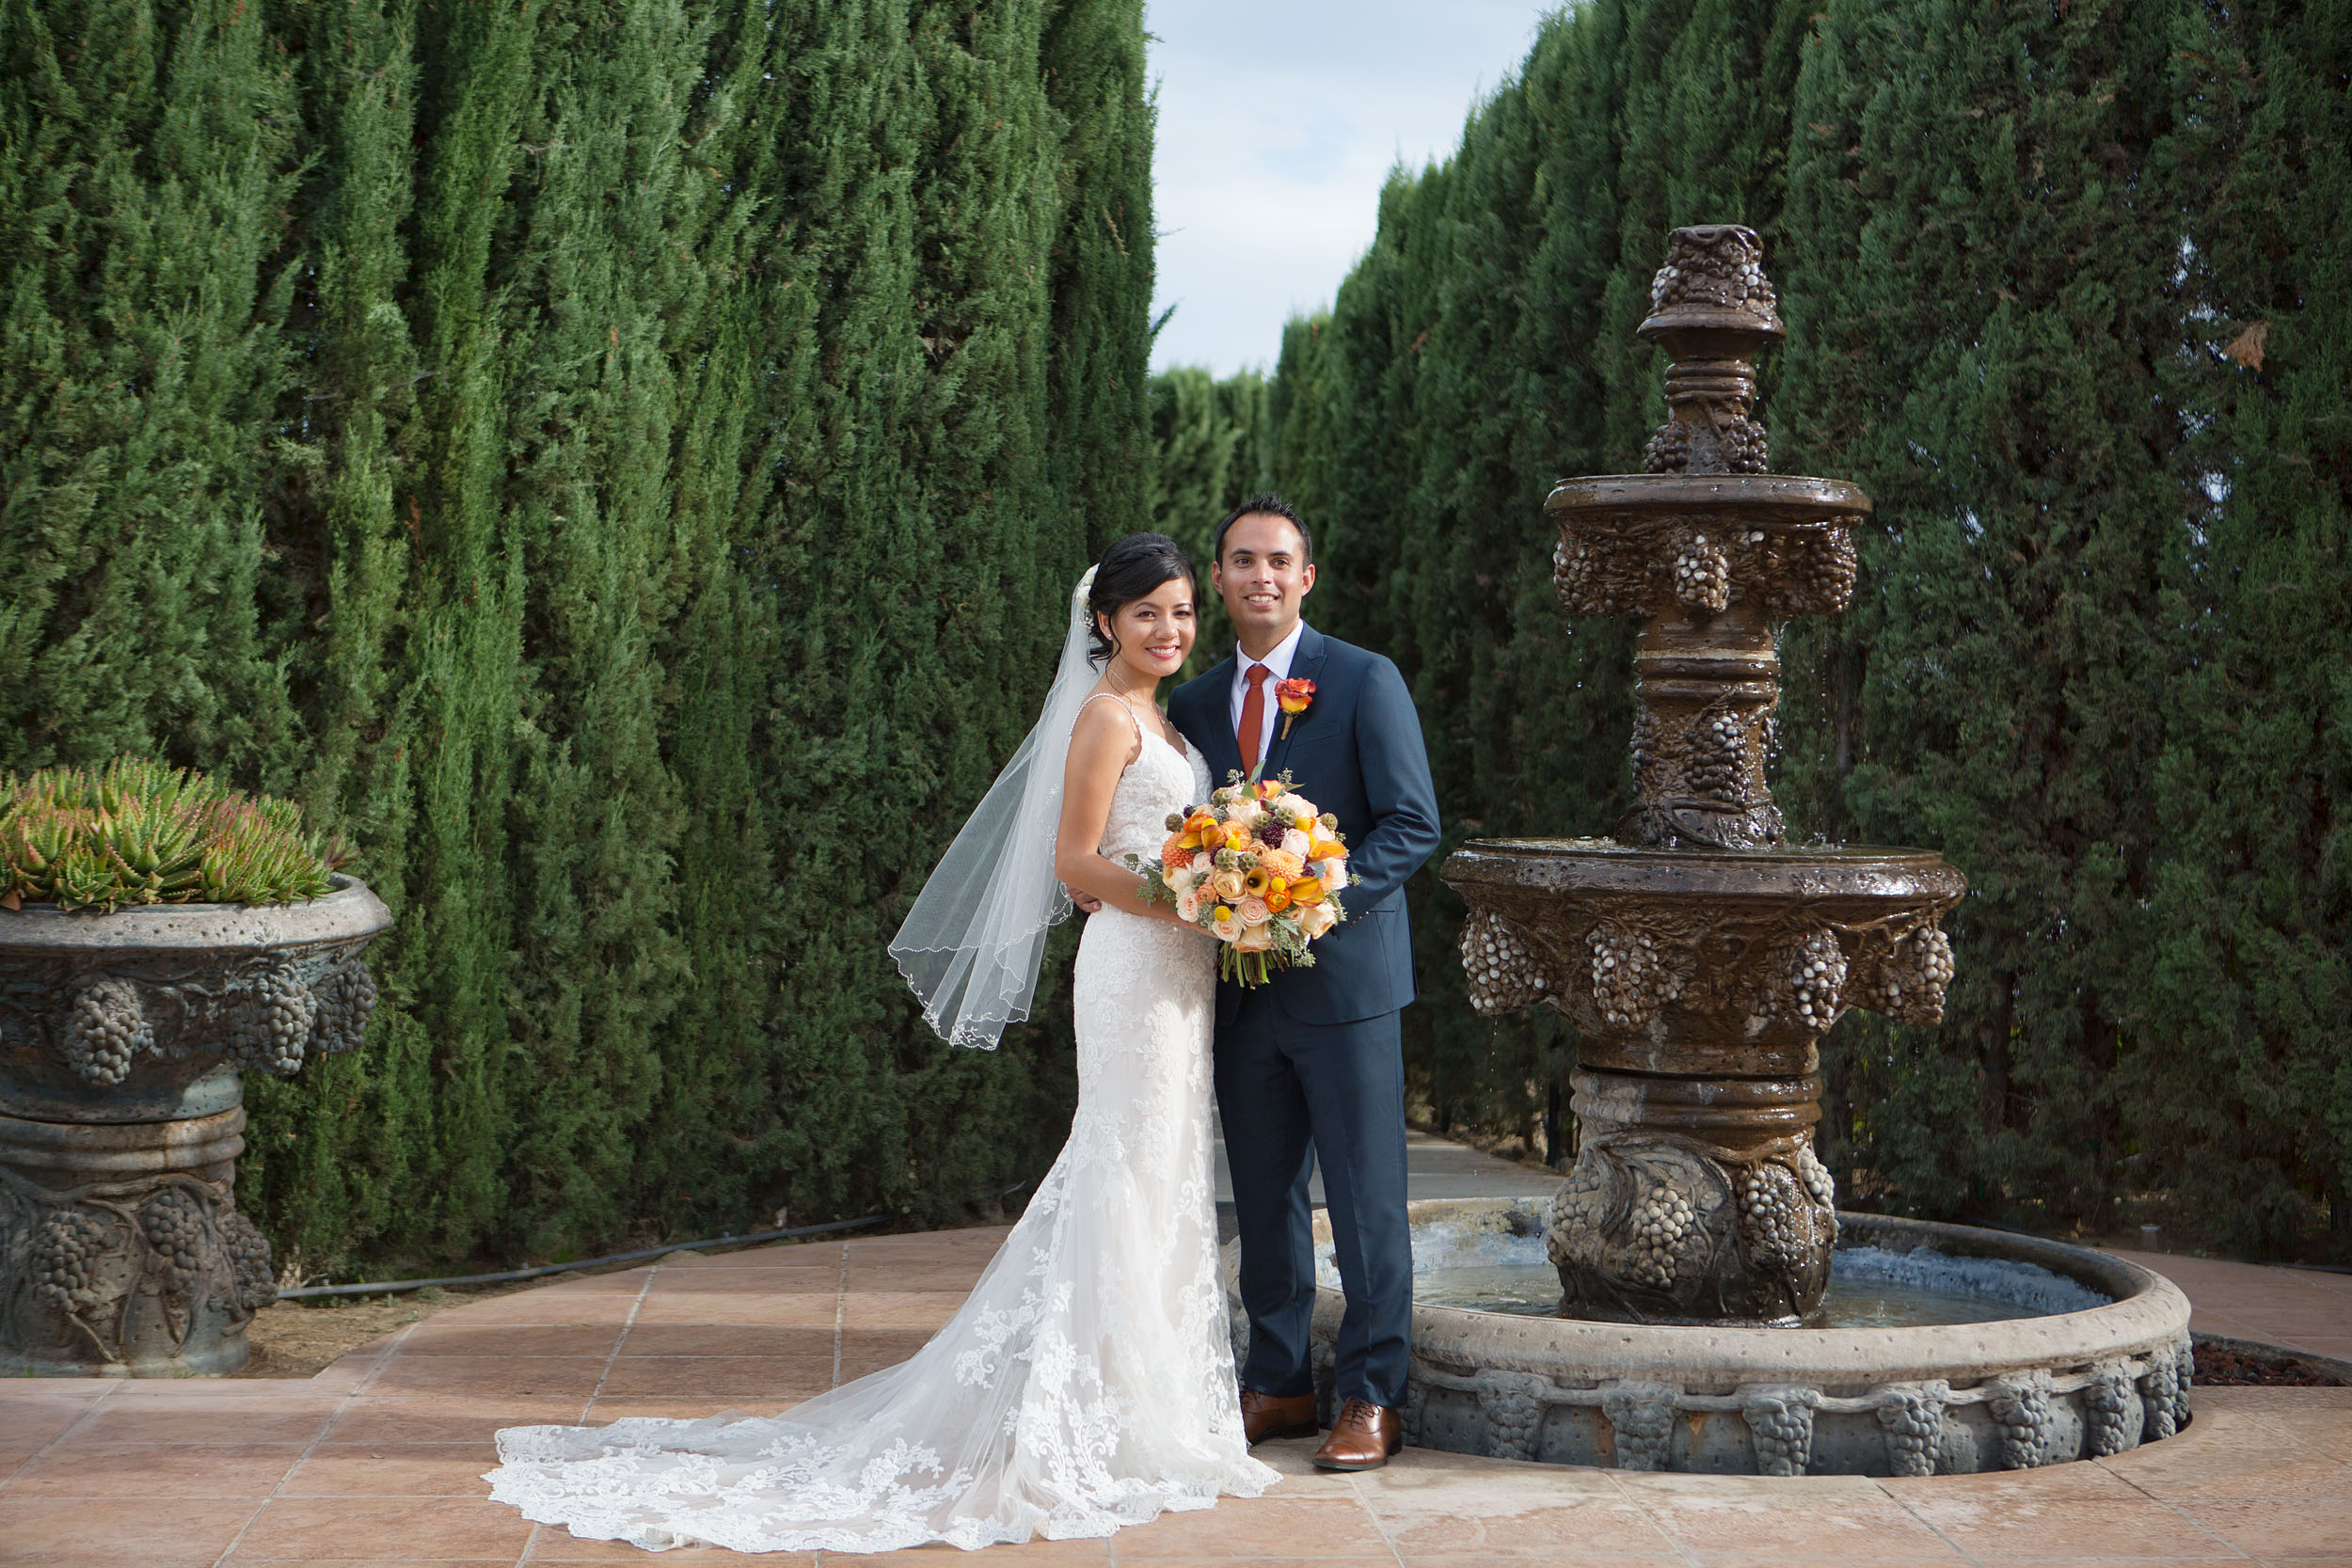 Bride and groom by fountain at Villa de Amore in Temecula.